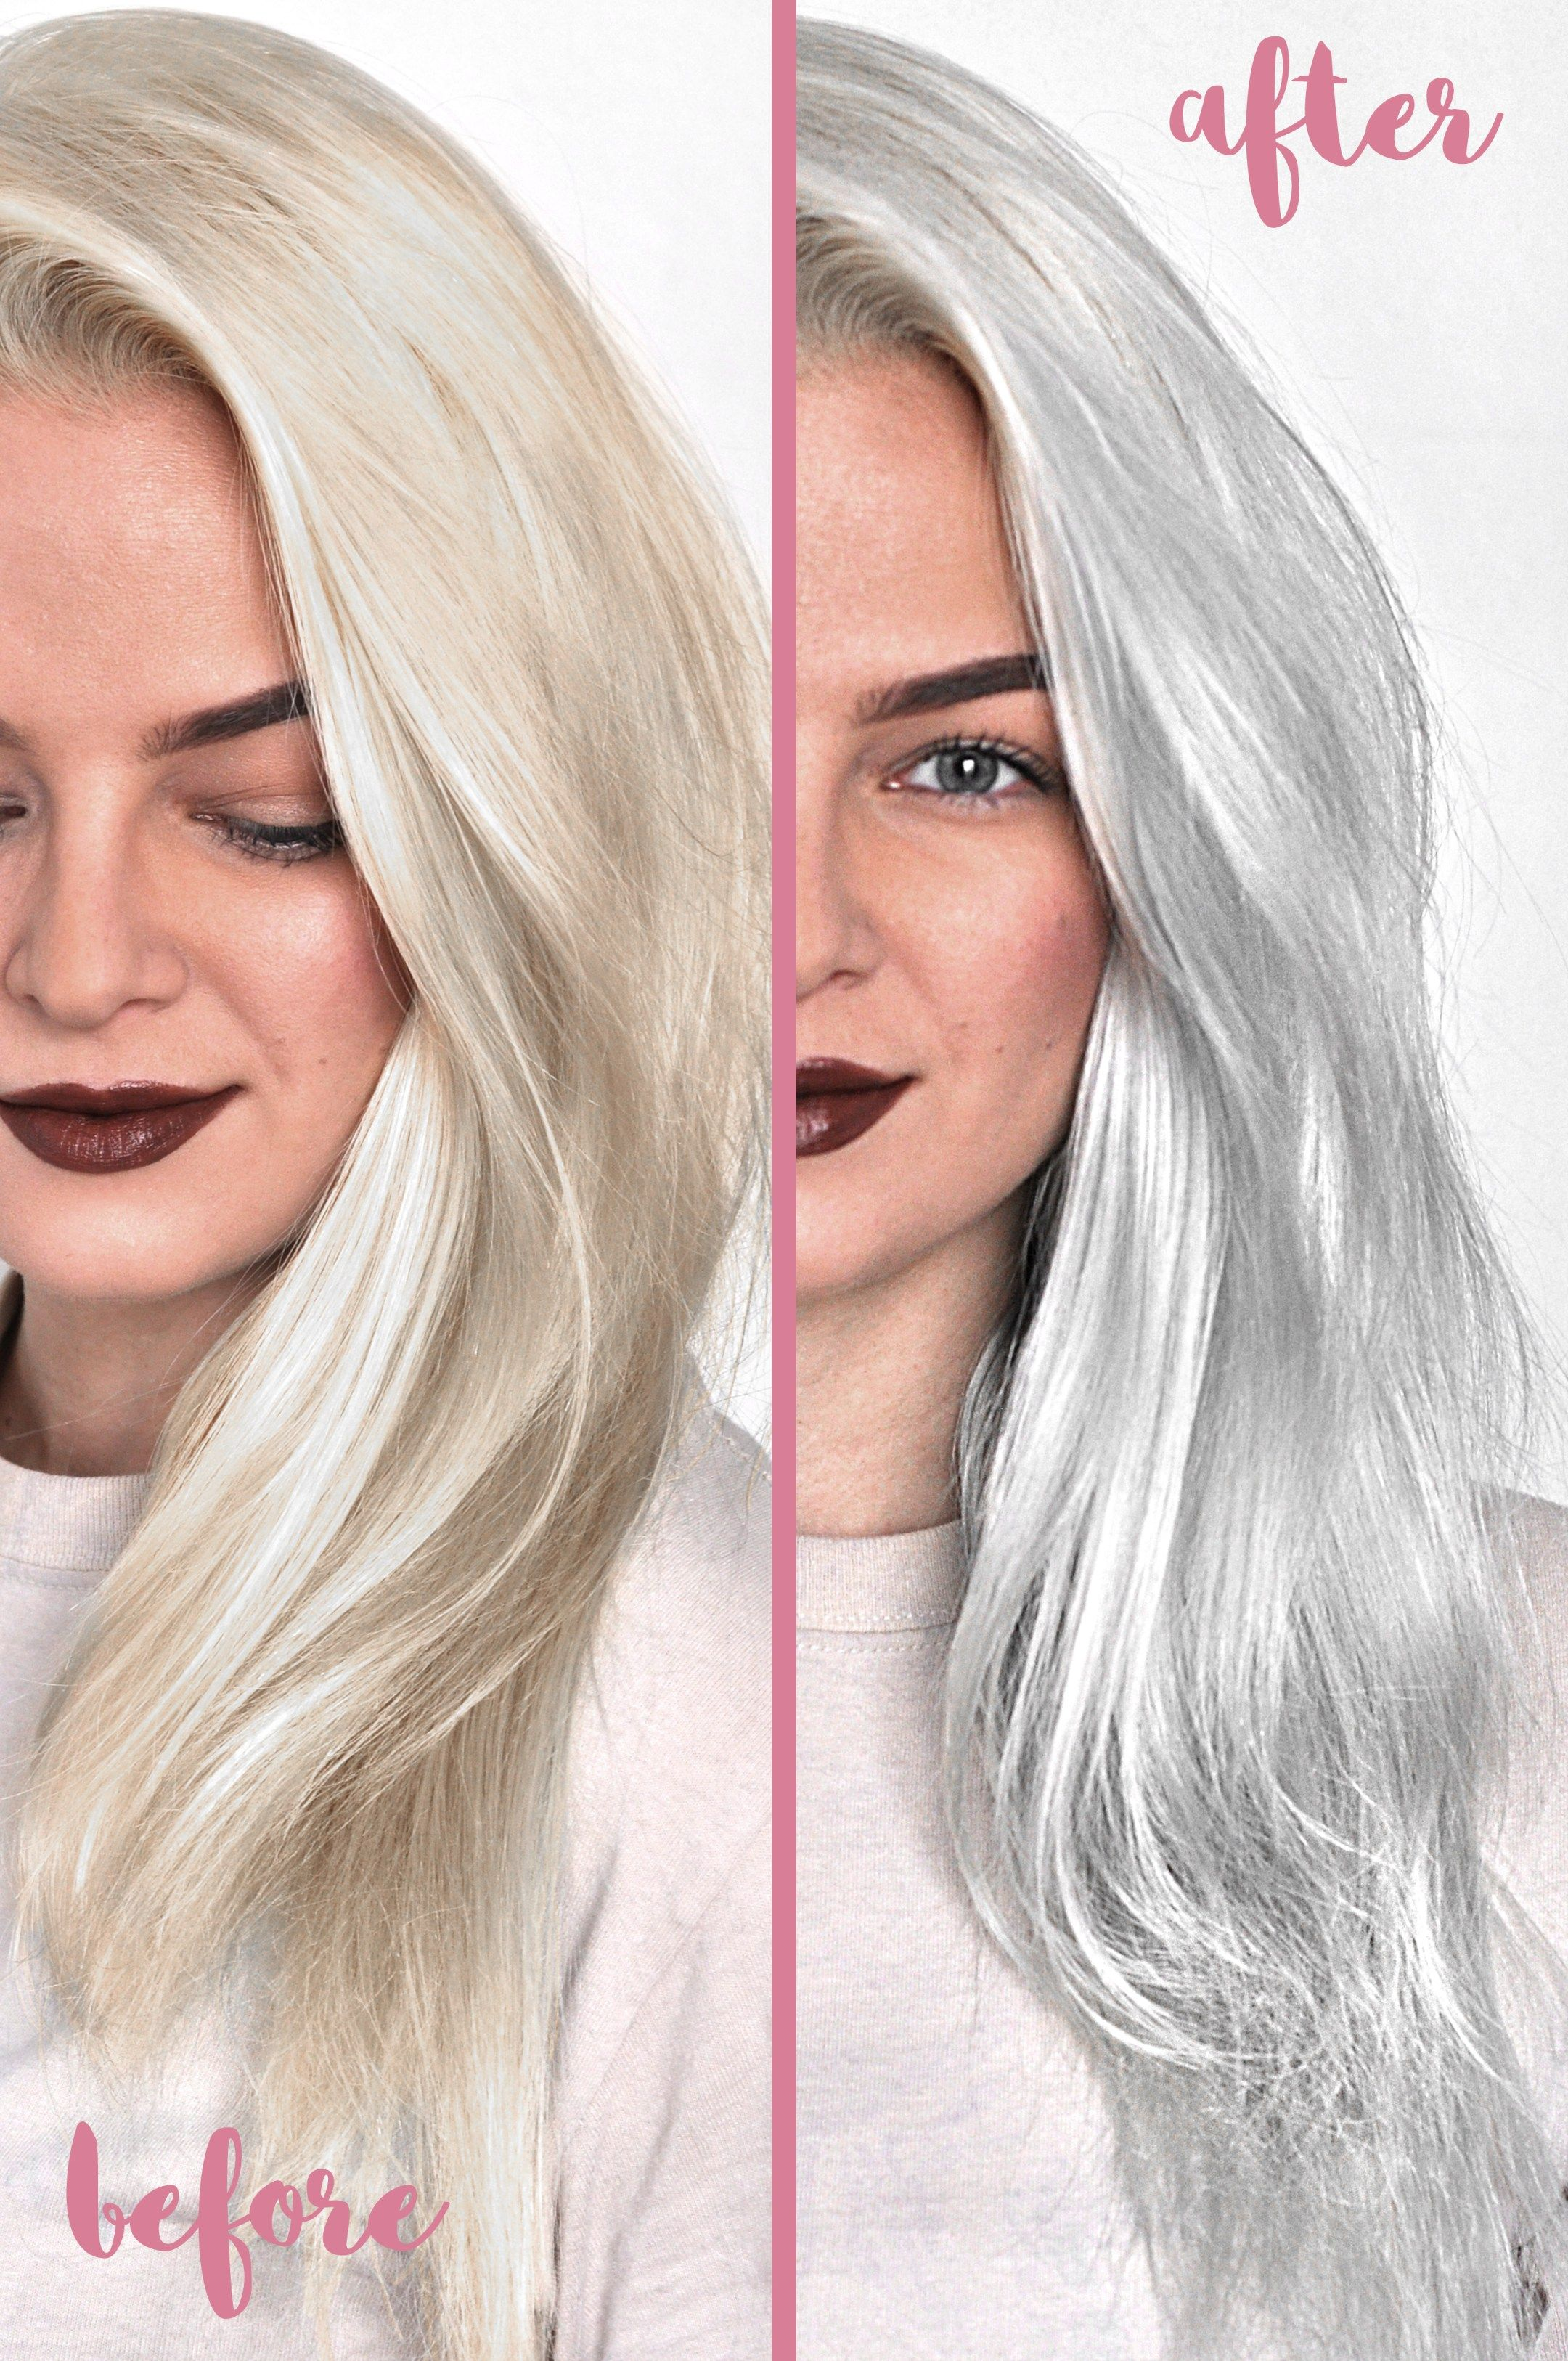 Top best sulfate free purple shampoos to tone blonde hair in